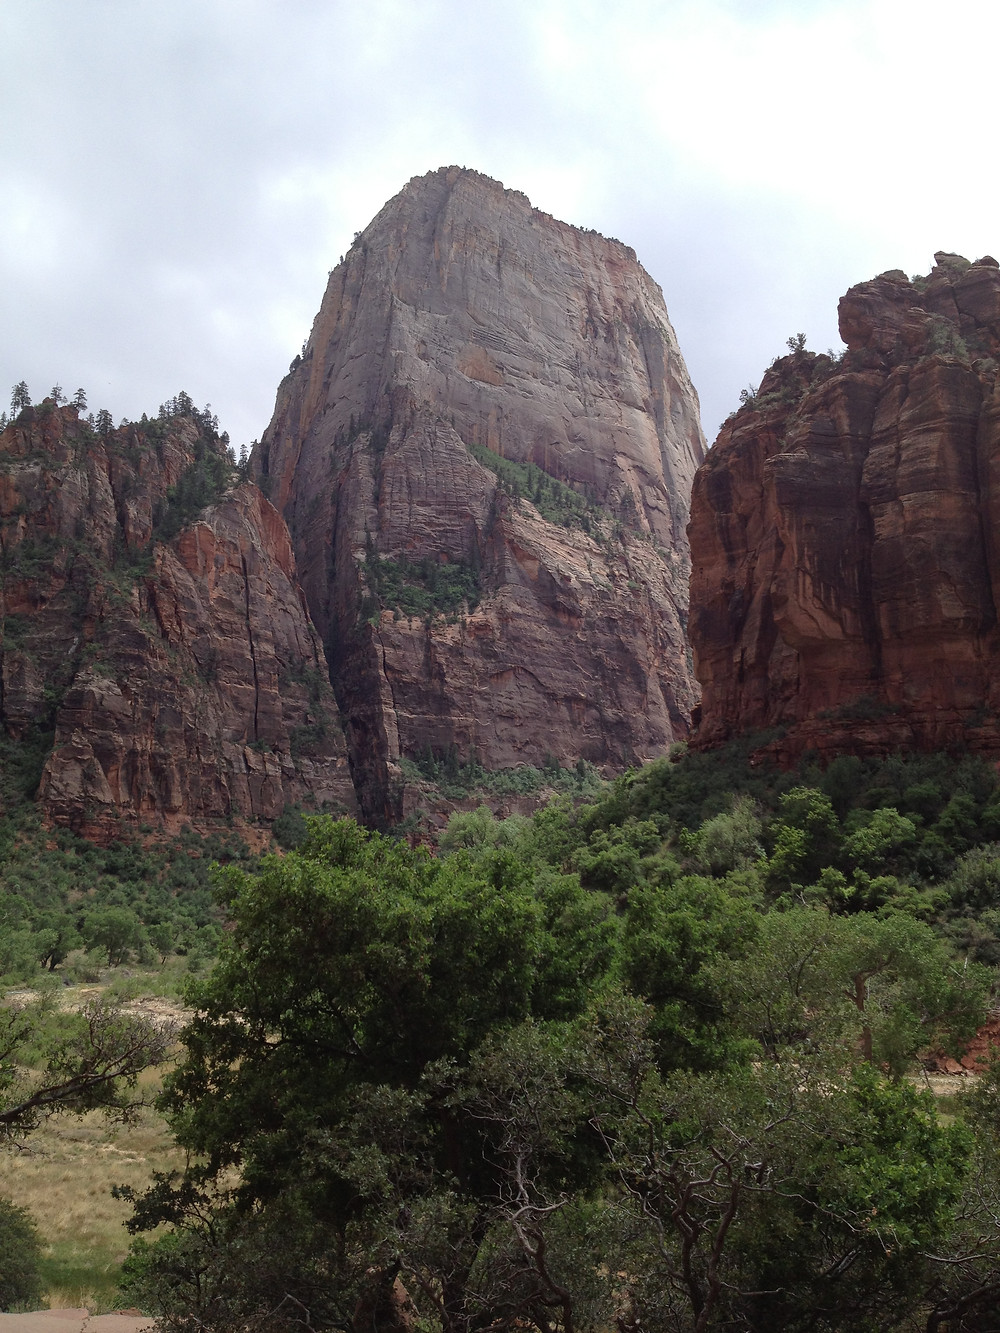 The Great White Throne is best scene from the Big Bend Shuttle Stop in Zion National Park, Utah